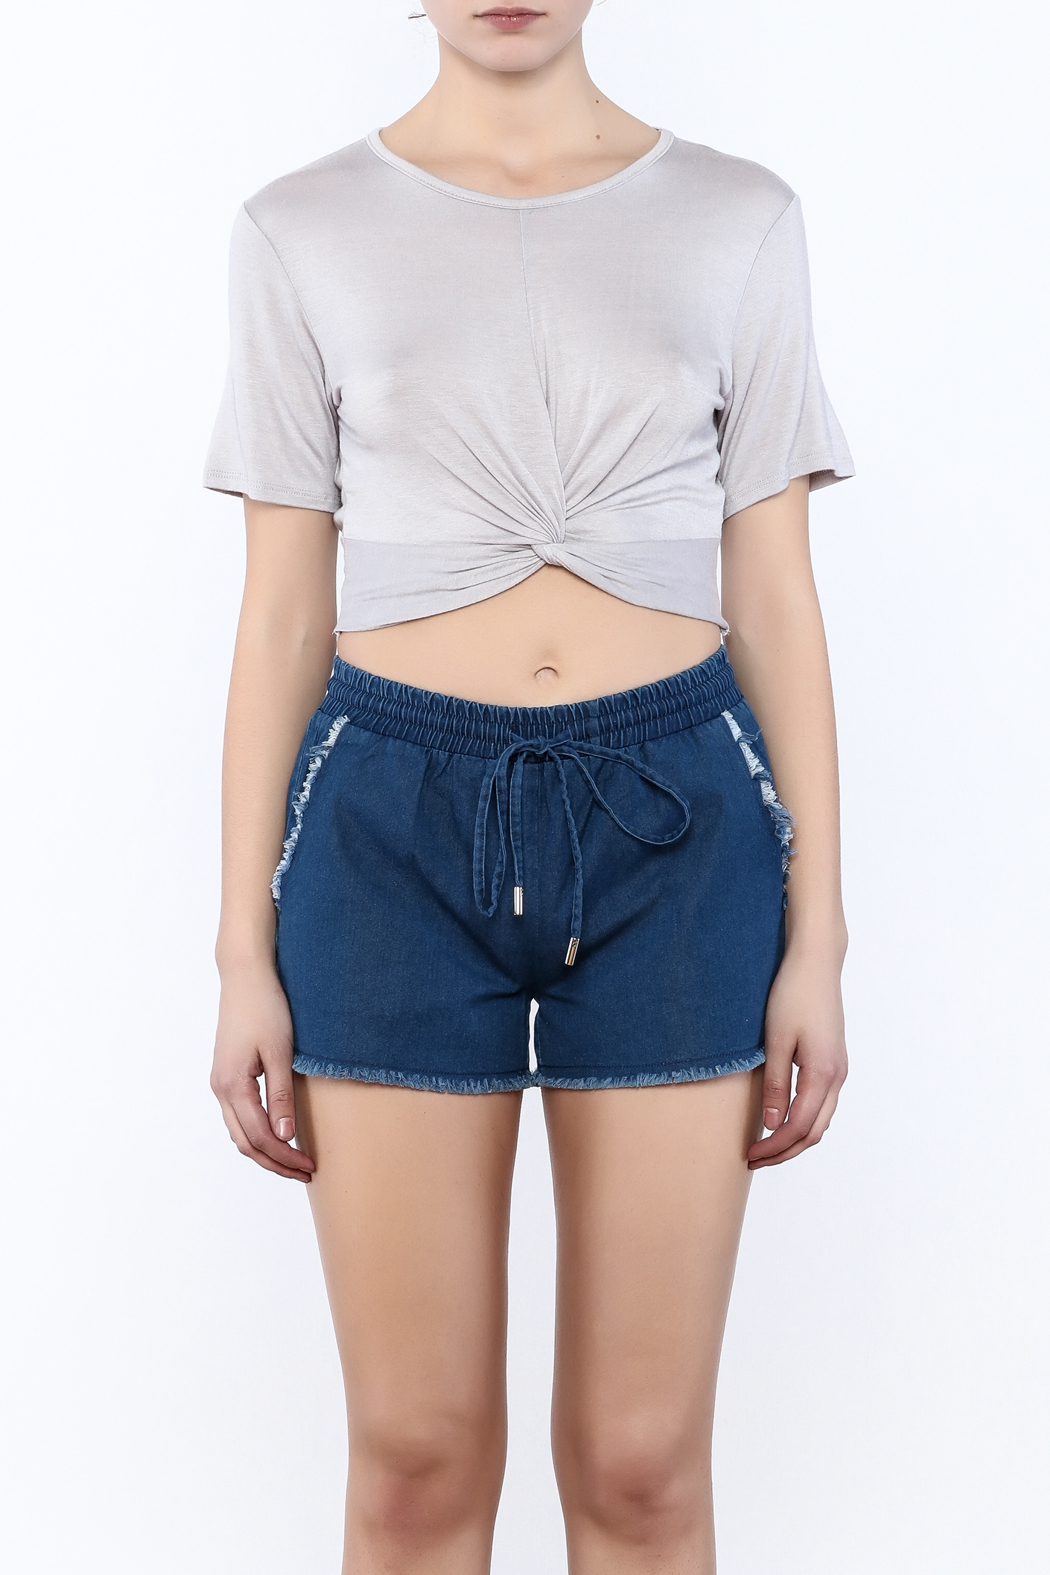 2 Hearts Twist-Knot Cropped Tee - Side Cropped Image